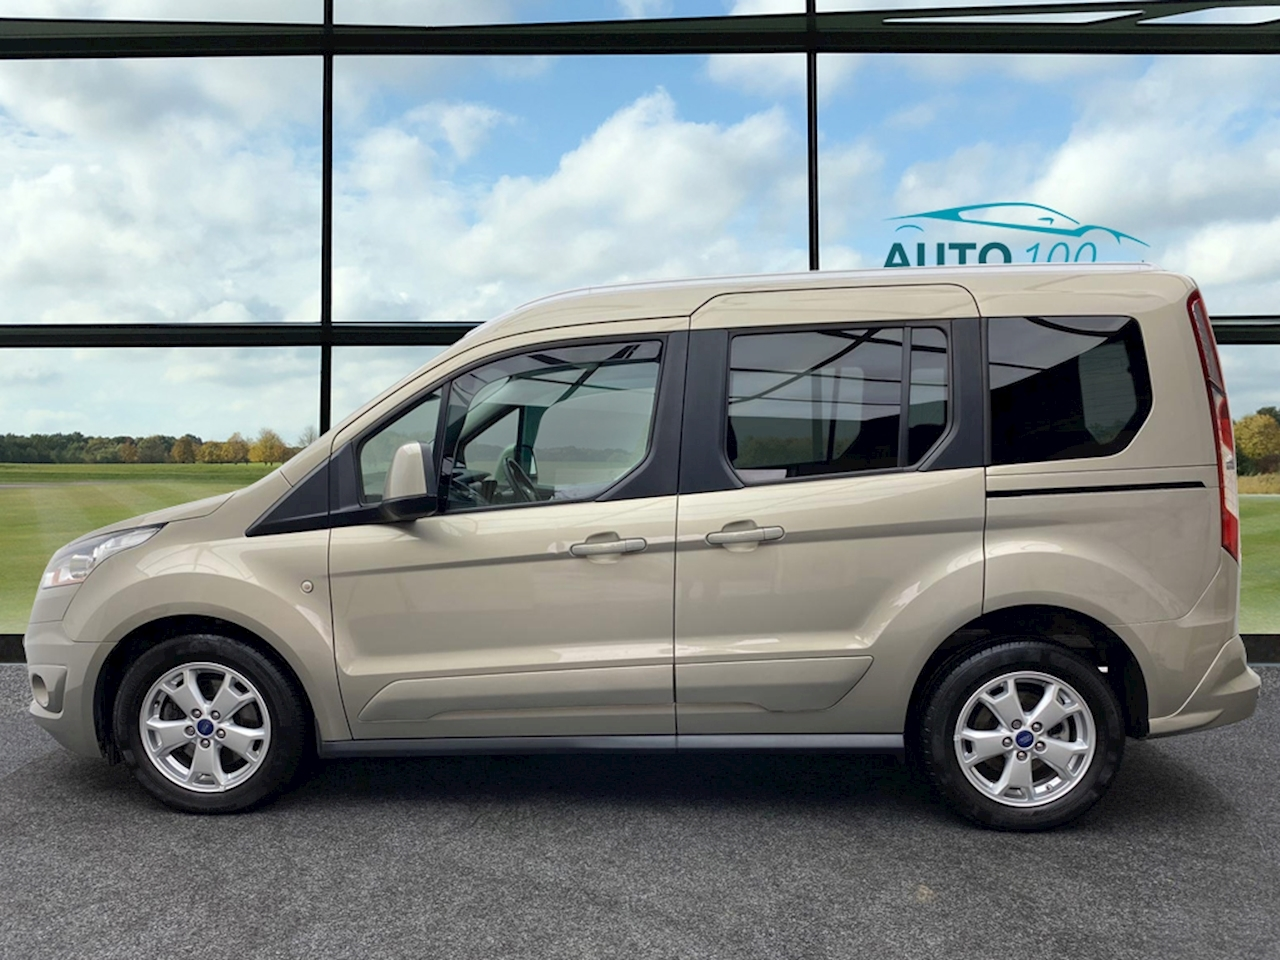 Ford Tourneo Connect Titanium Tdci Van With Side Windows 1.6 Manual Diesel